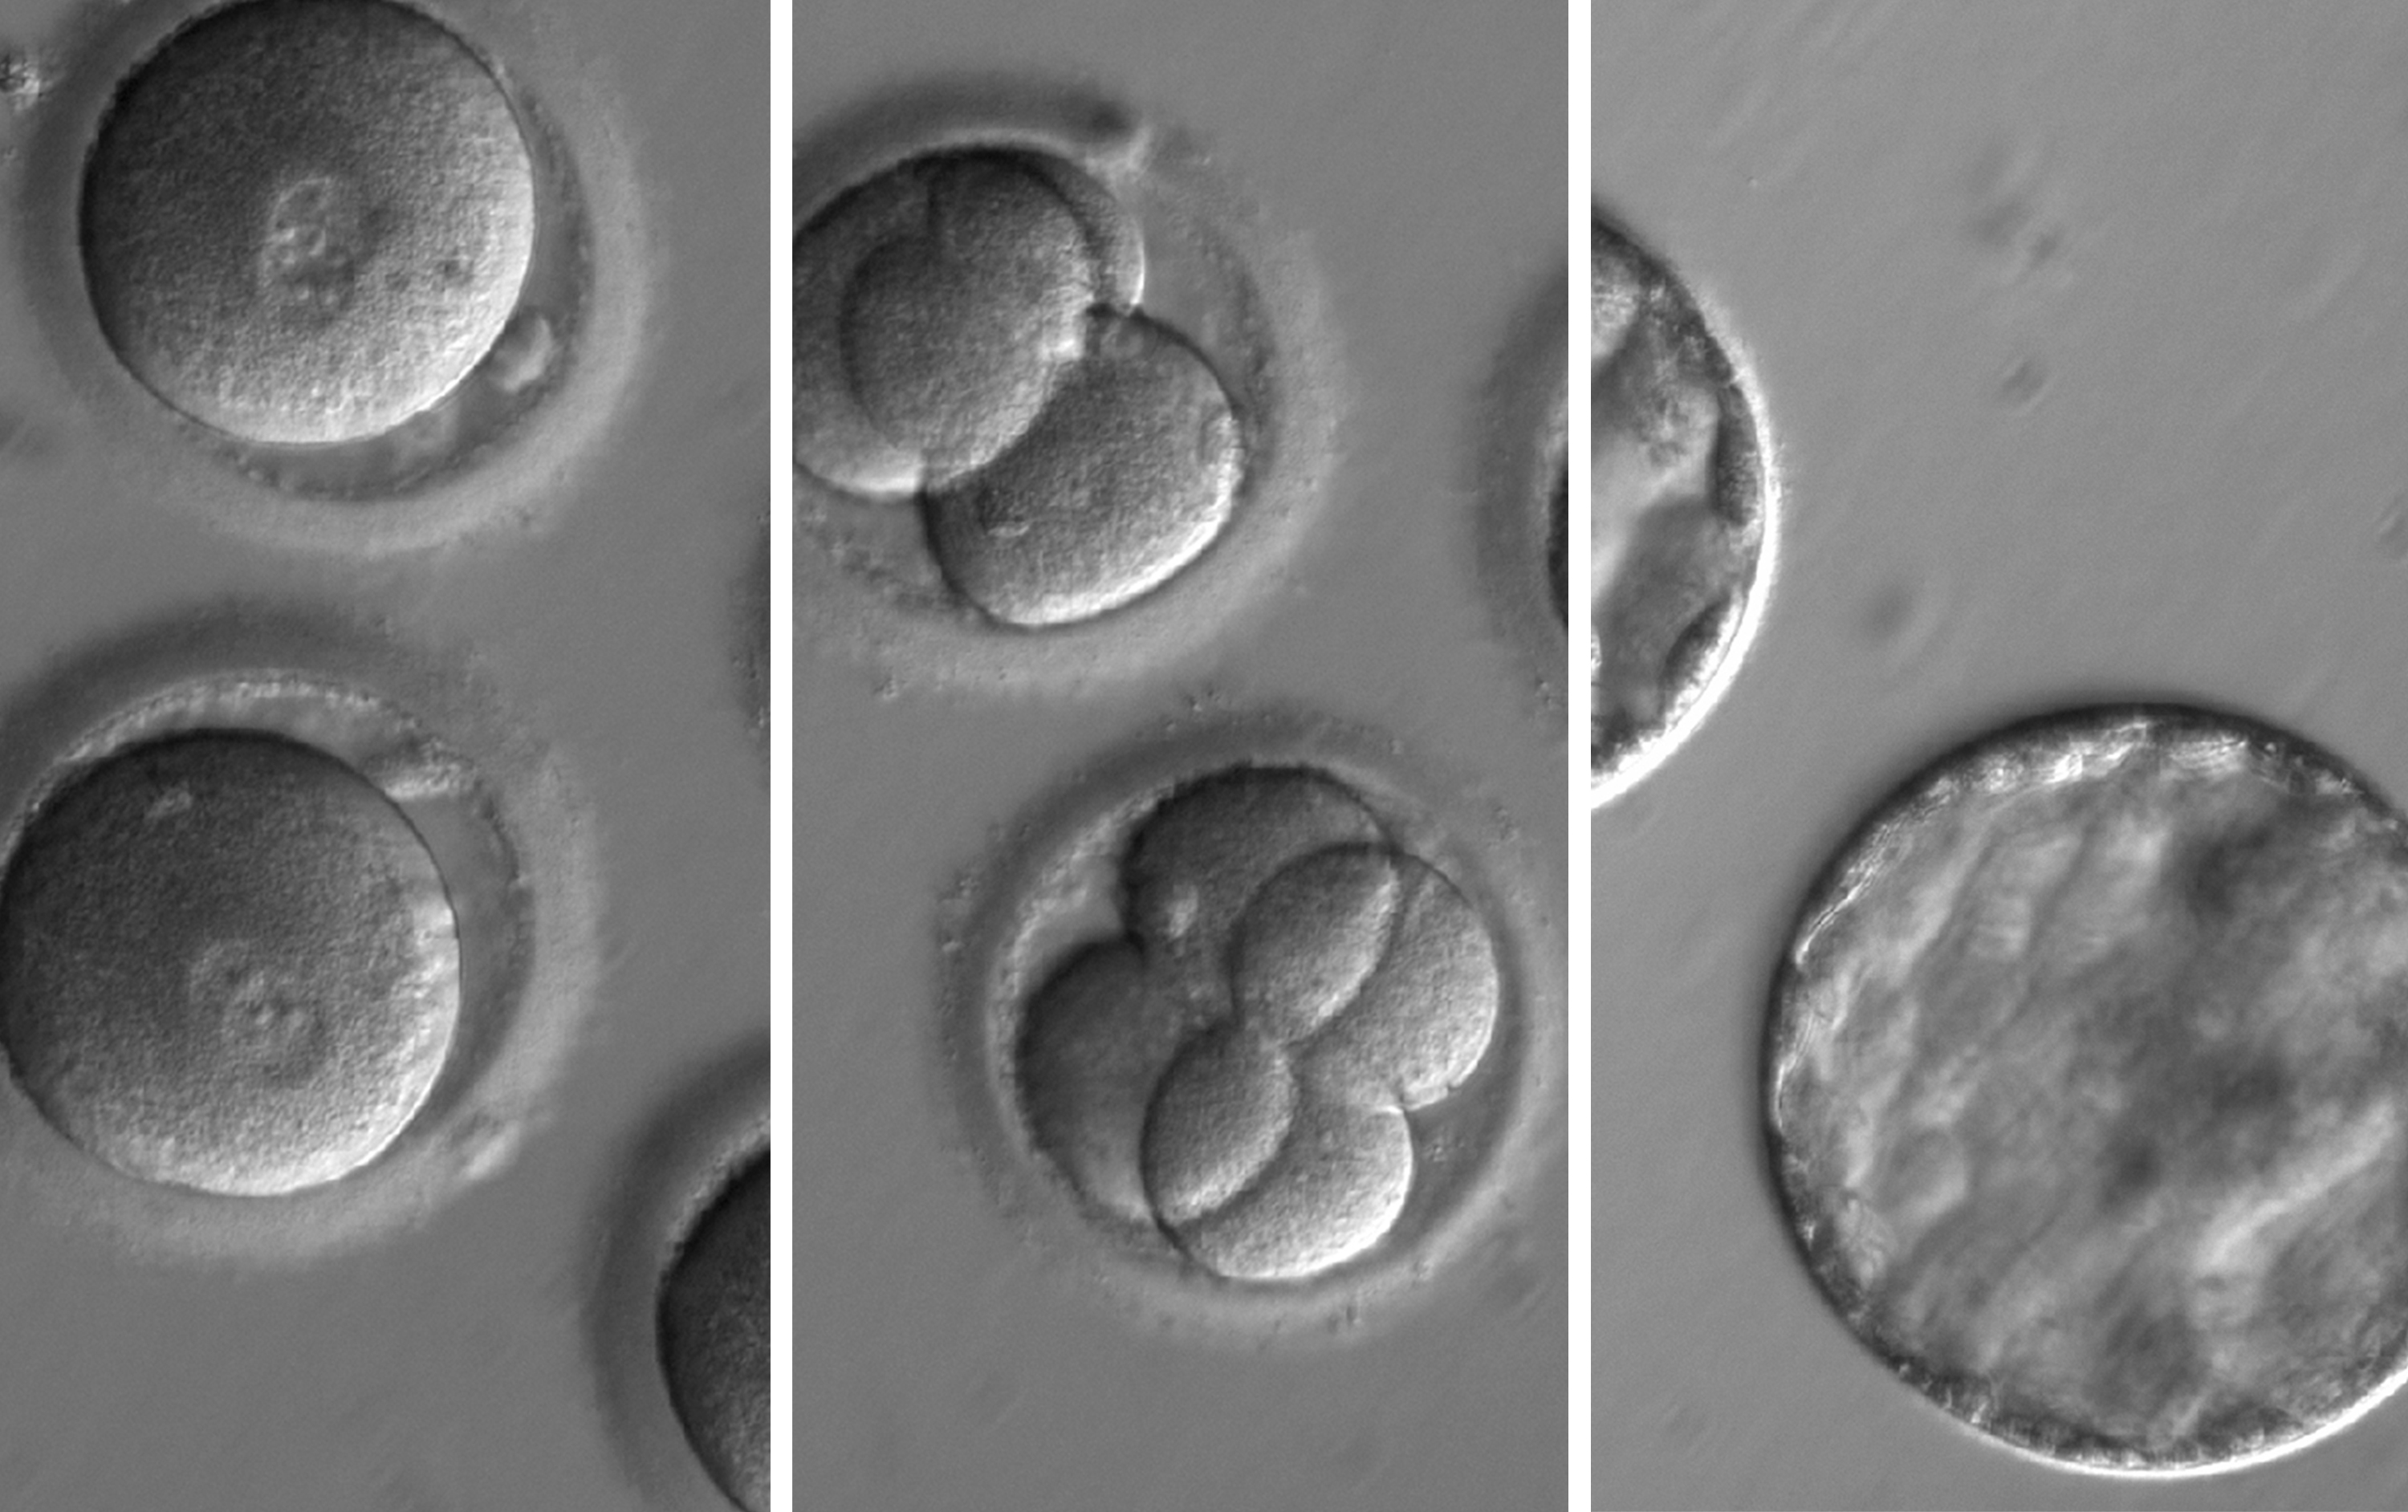 Scientists successfully used CRISPR to fix a mutation that causes disease. This is huge.